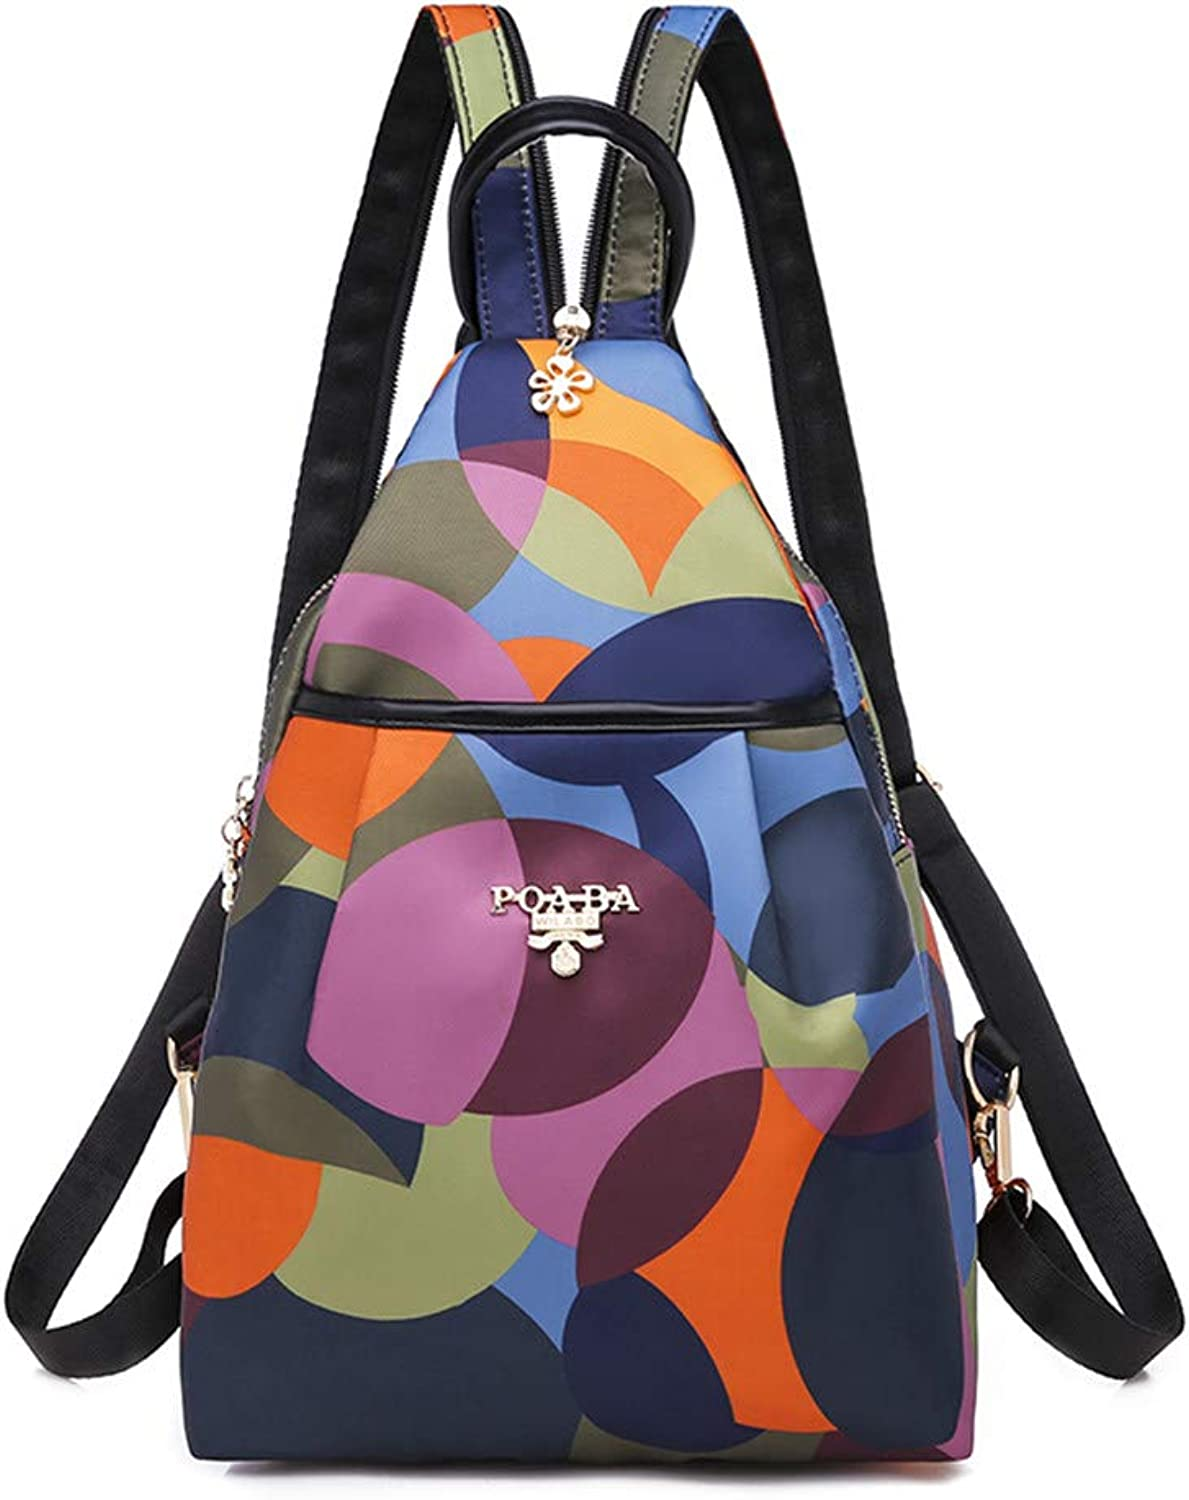 Women's Backpack Multicolor Backpack Women's Oxford Cloth Backpack Crossbody Bag